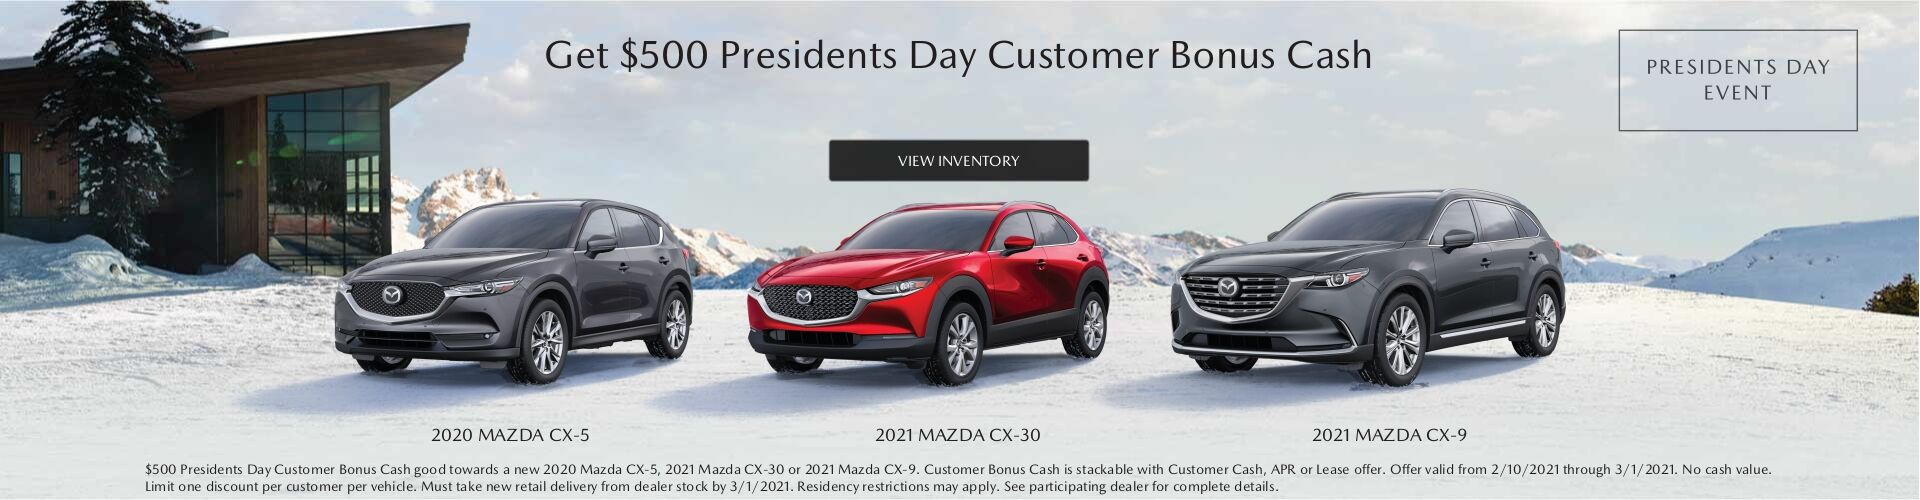 President's Day Customer Bonus Cash Feb 2021